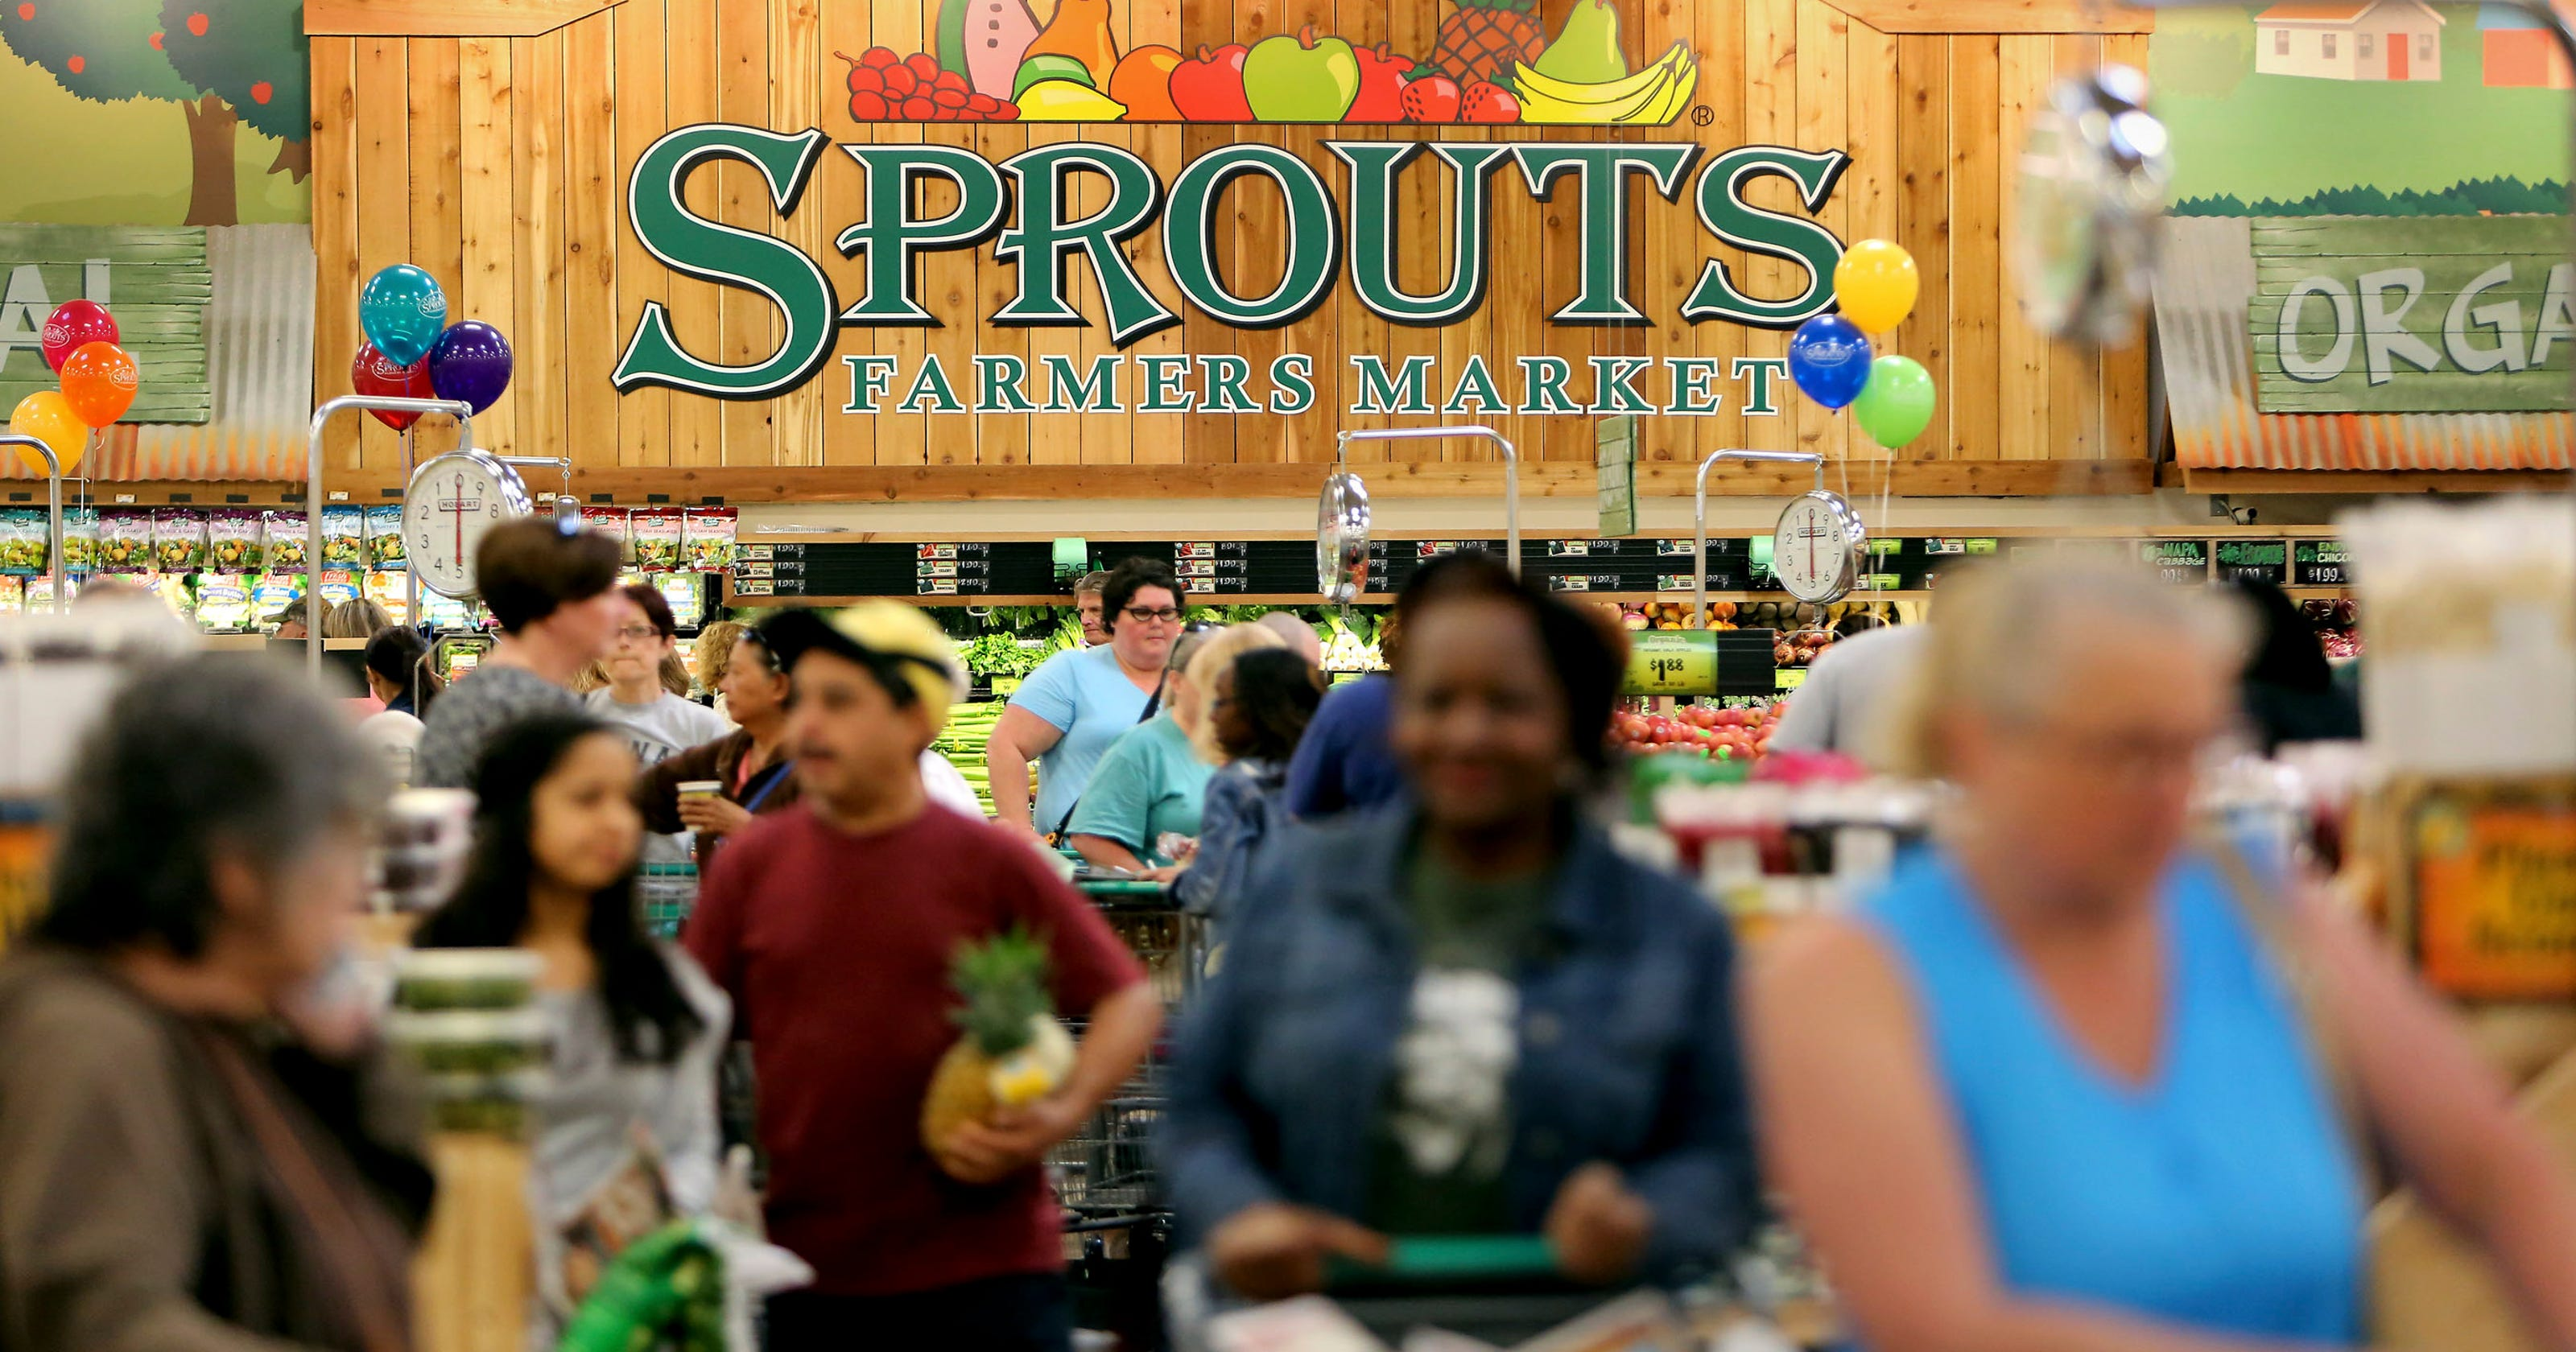 Memphis woman sues Sprouts market, citing racial